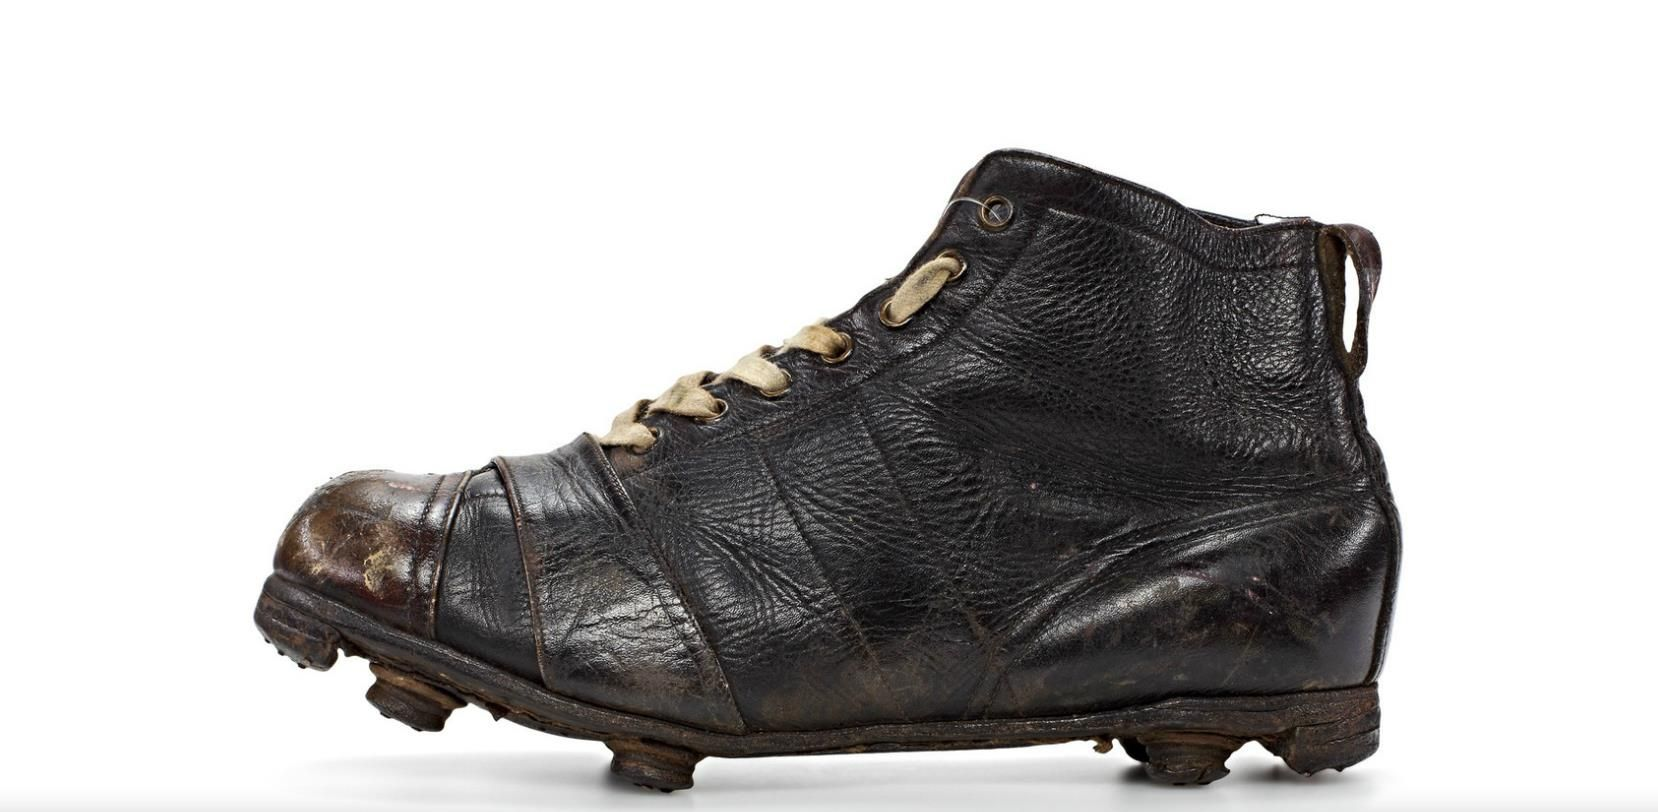 First ever Adidas football boot - One of Adi Dassler s first patents in  1925. c6088eabbf19c